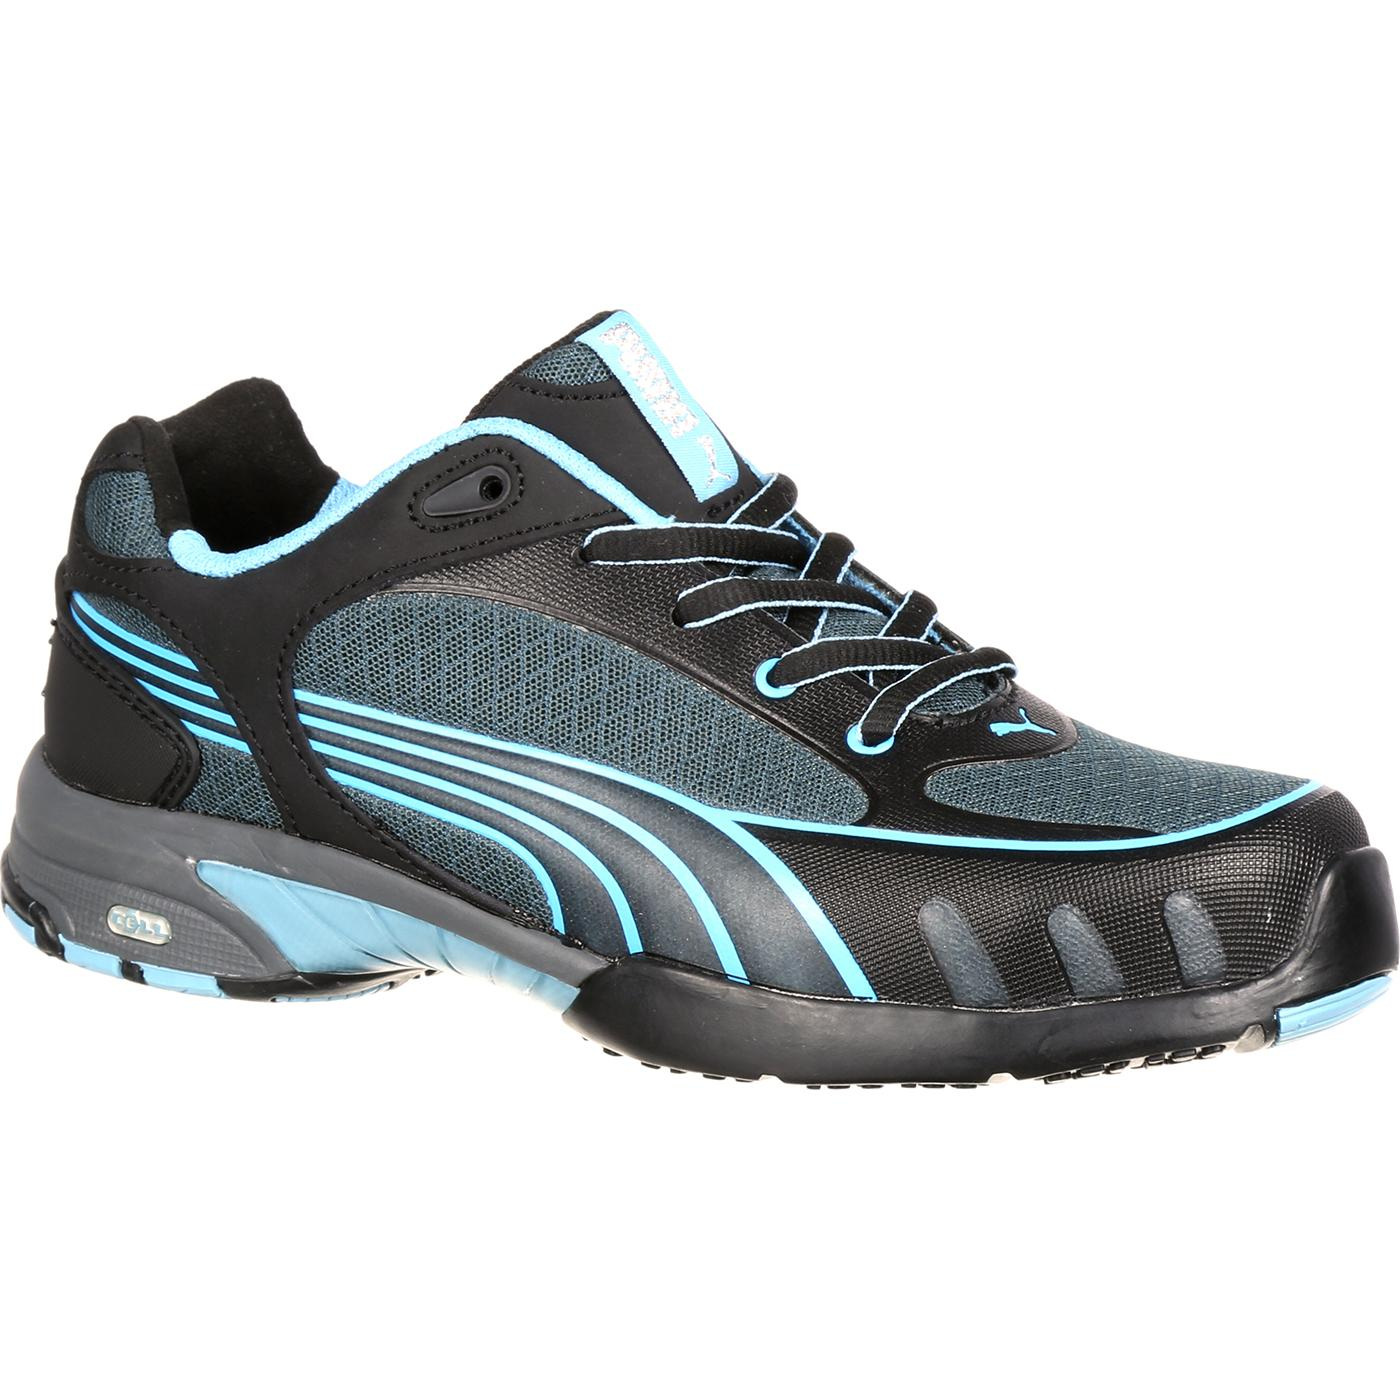 Puma Women's Steel Toe Athletic Work Shoe, #P642825